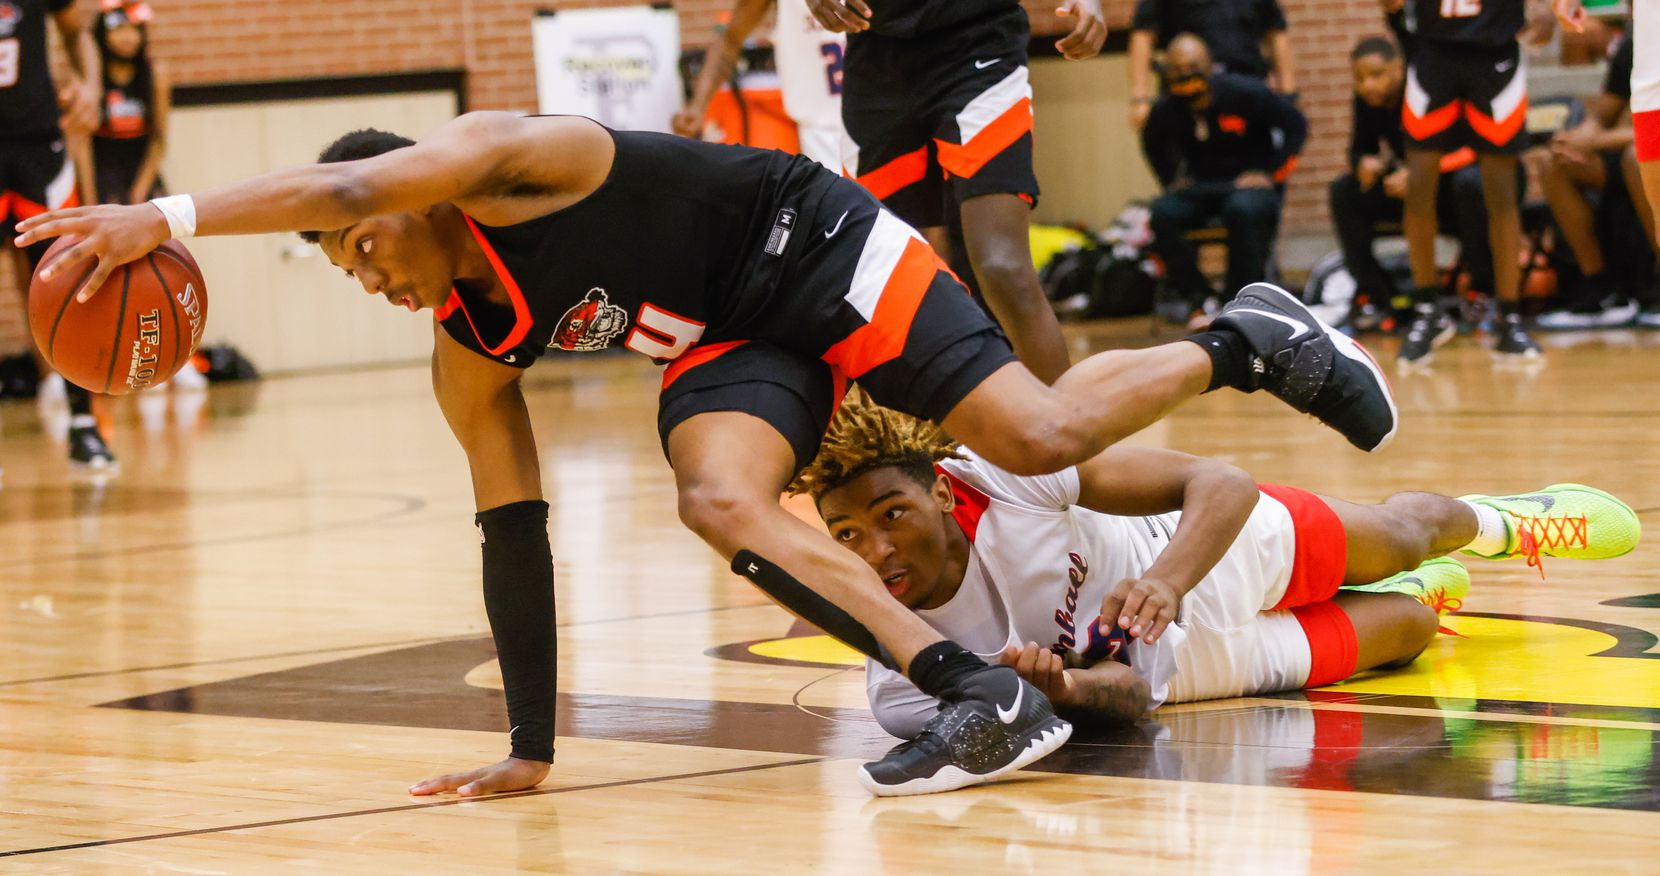 Kimball's Arterio Morris (2) chases after Lancaster's Wade Taylor IV during the overtime of a boys basketball UIL Class 5A Region II playoff game in Forney on Friday, March 5, 2021. (Juan Figueroa/ The Dallas Morning News)